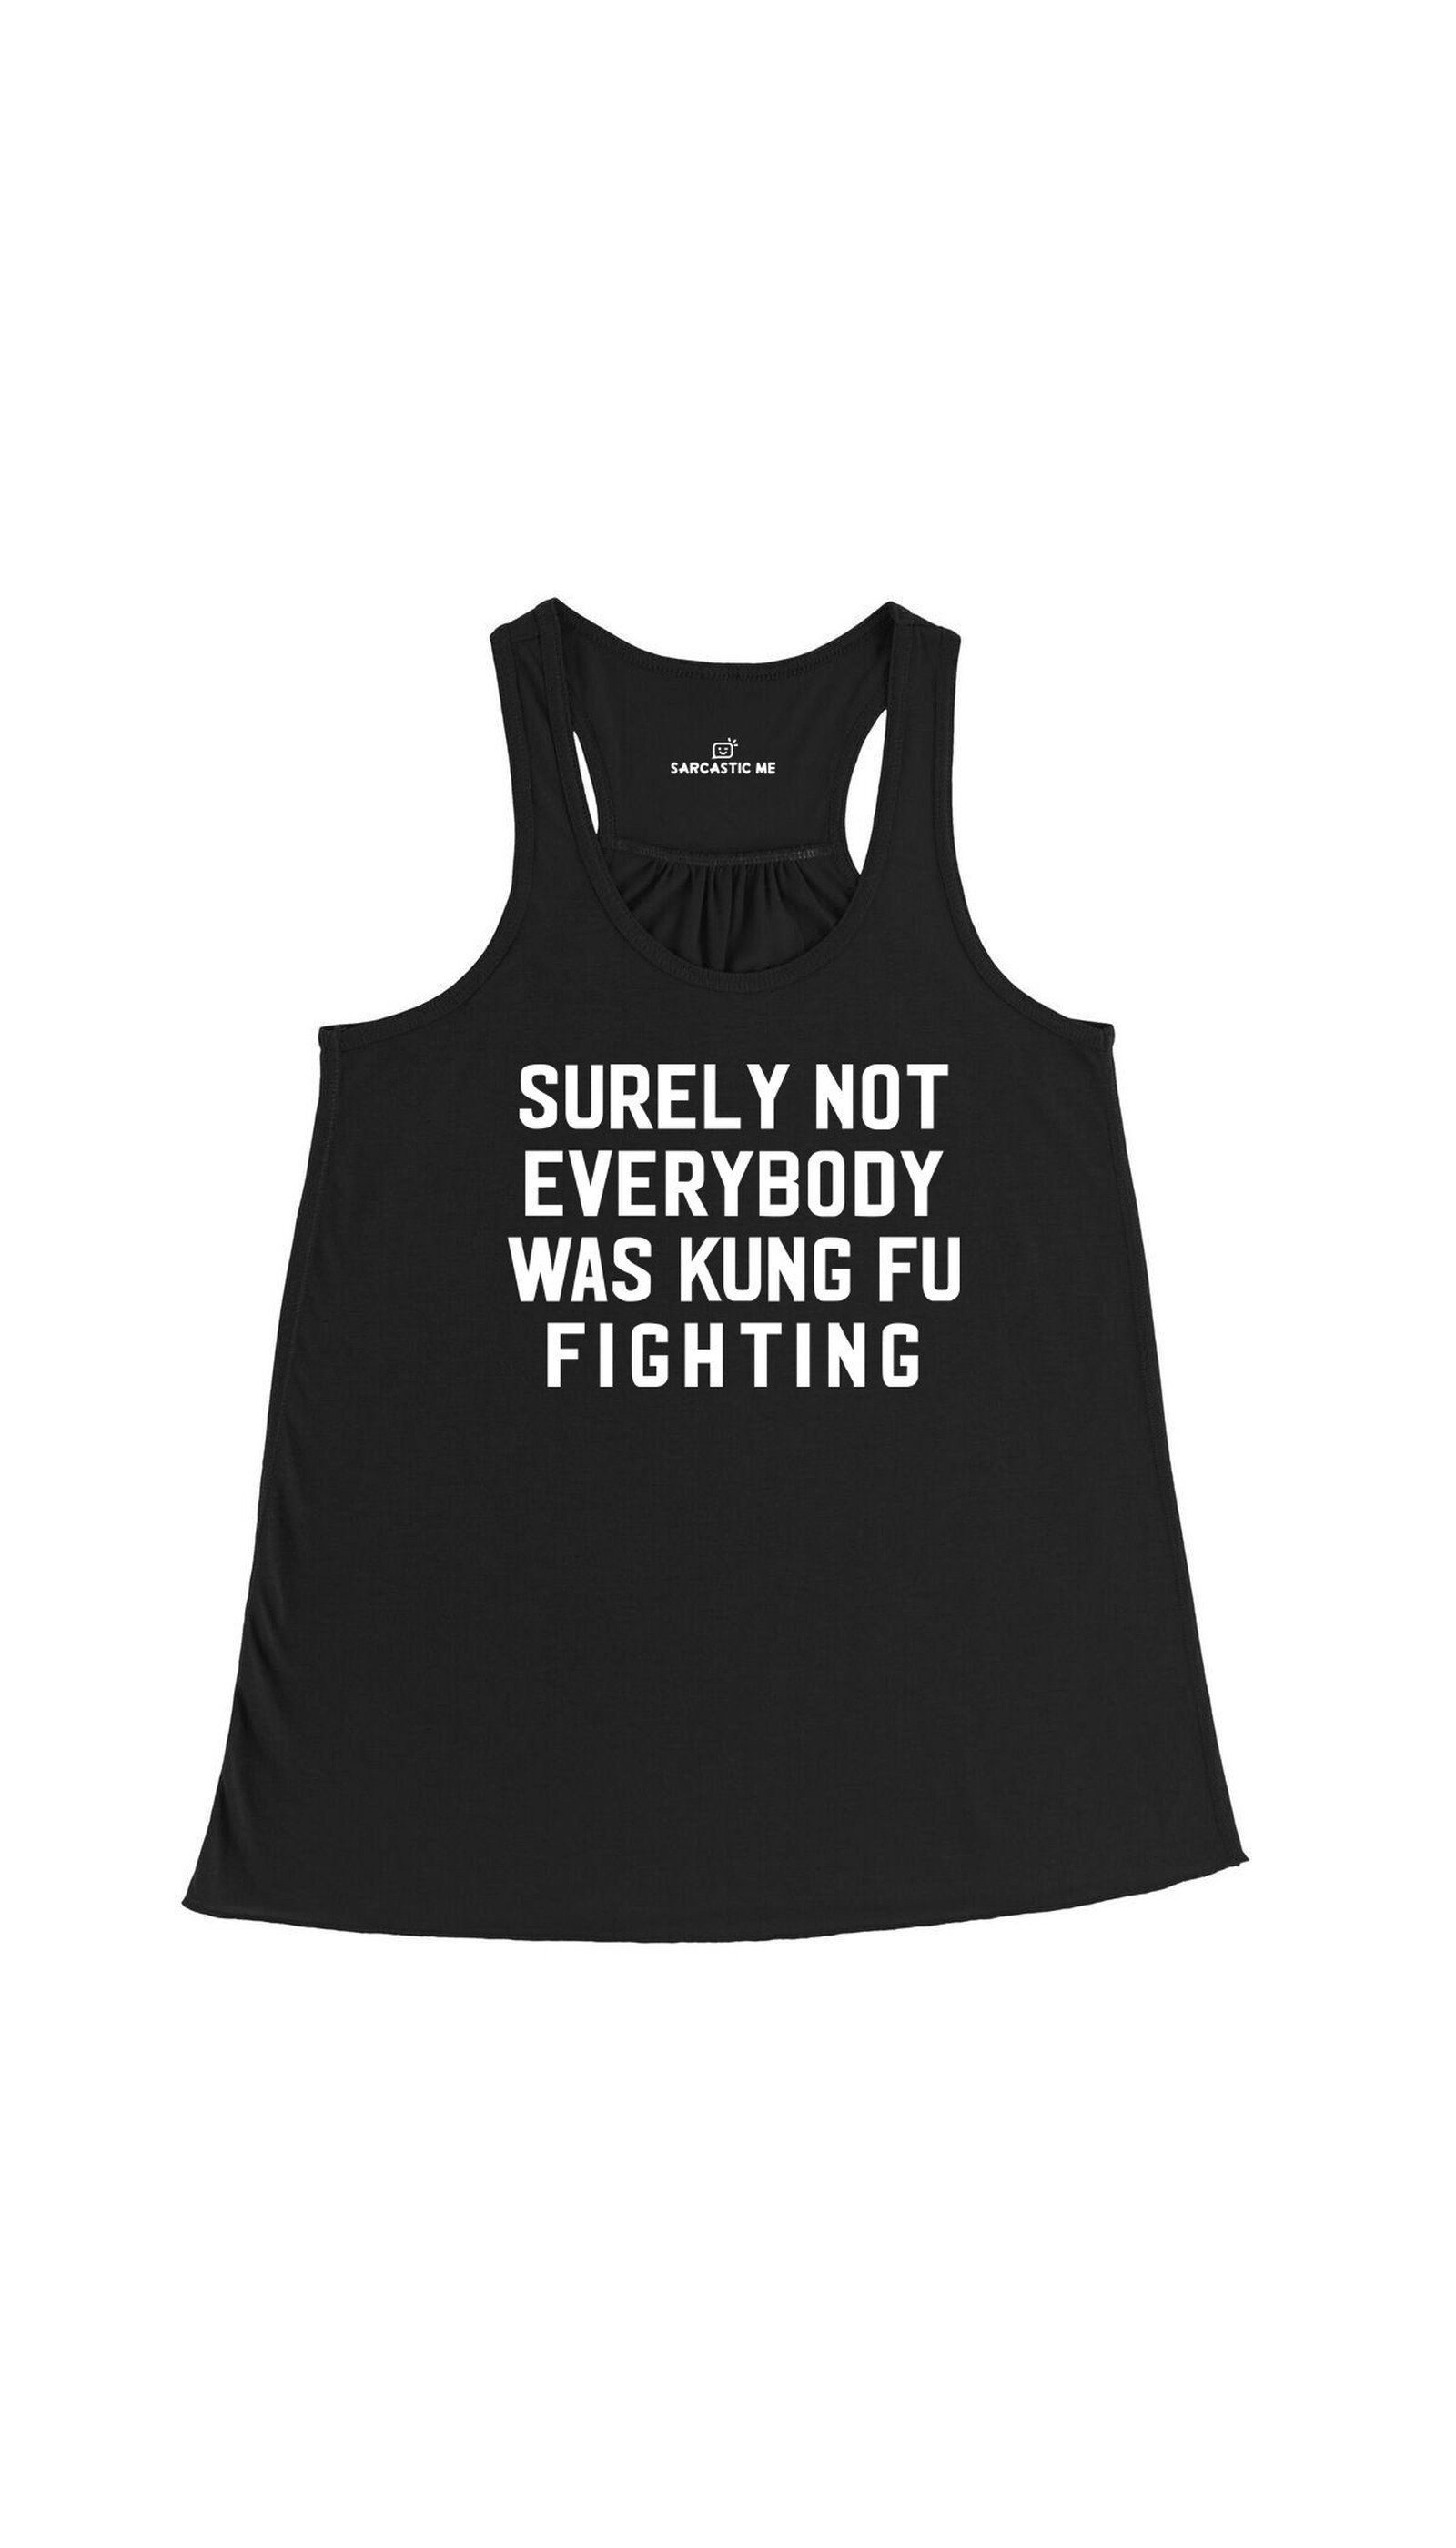 Surely Not Everybody Was Kung Fu Fighting Funny Black Basic Tank Top